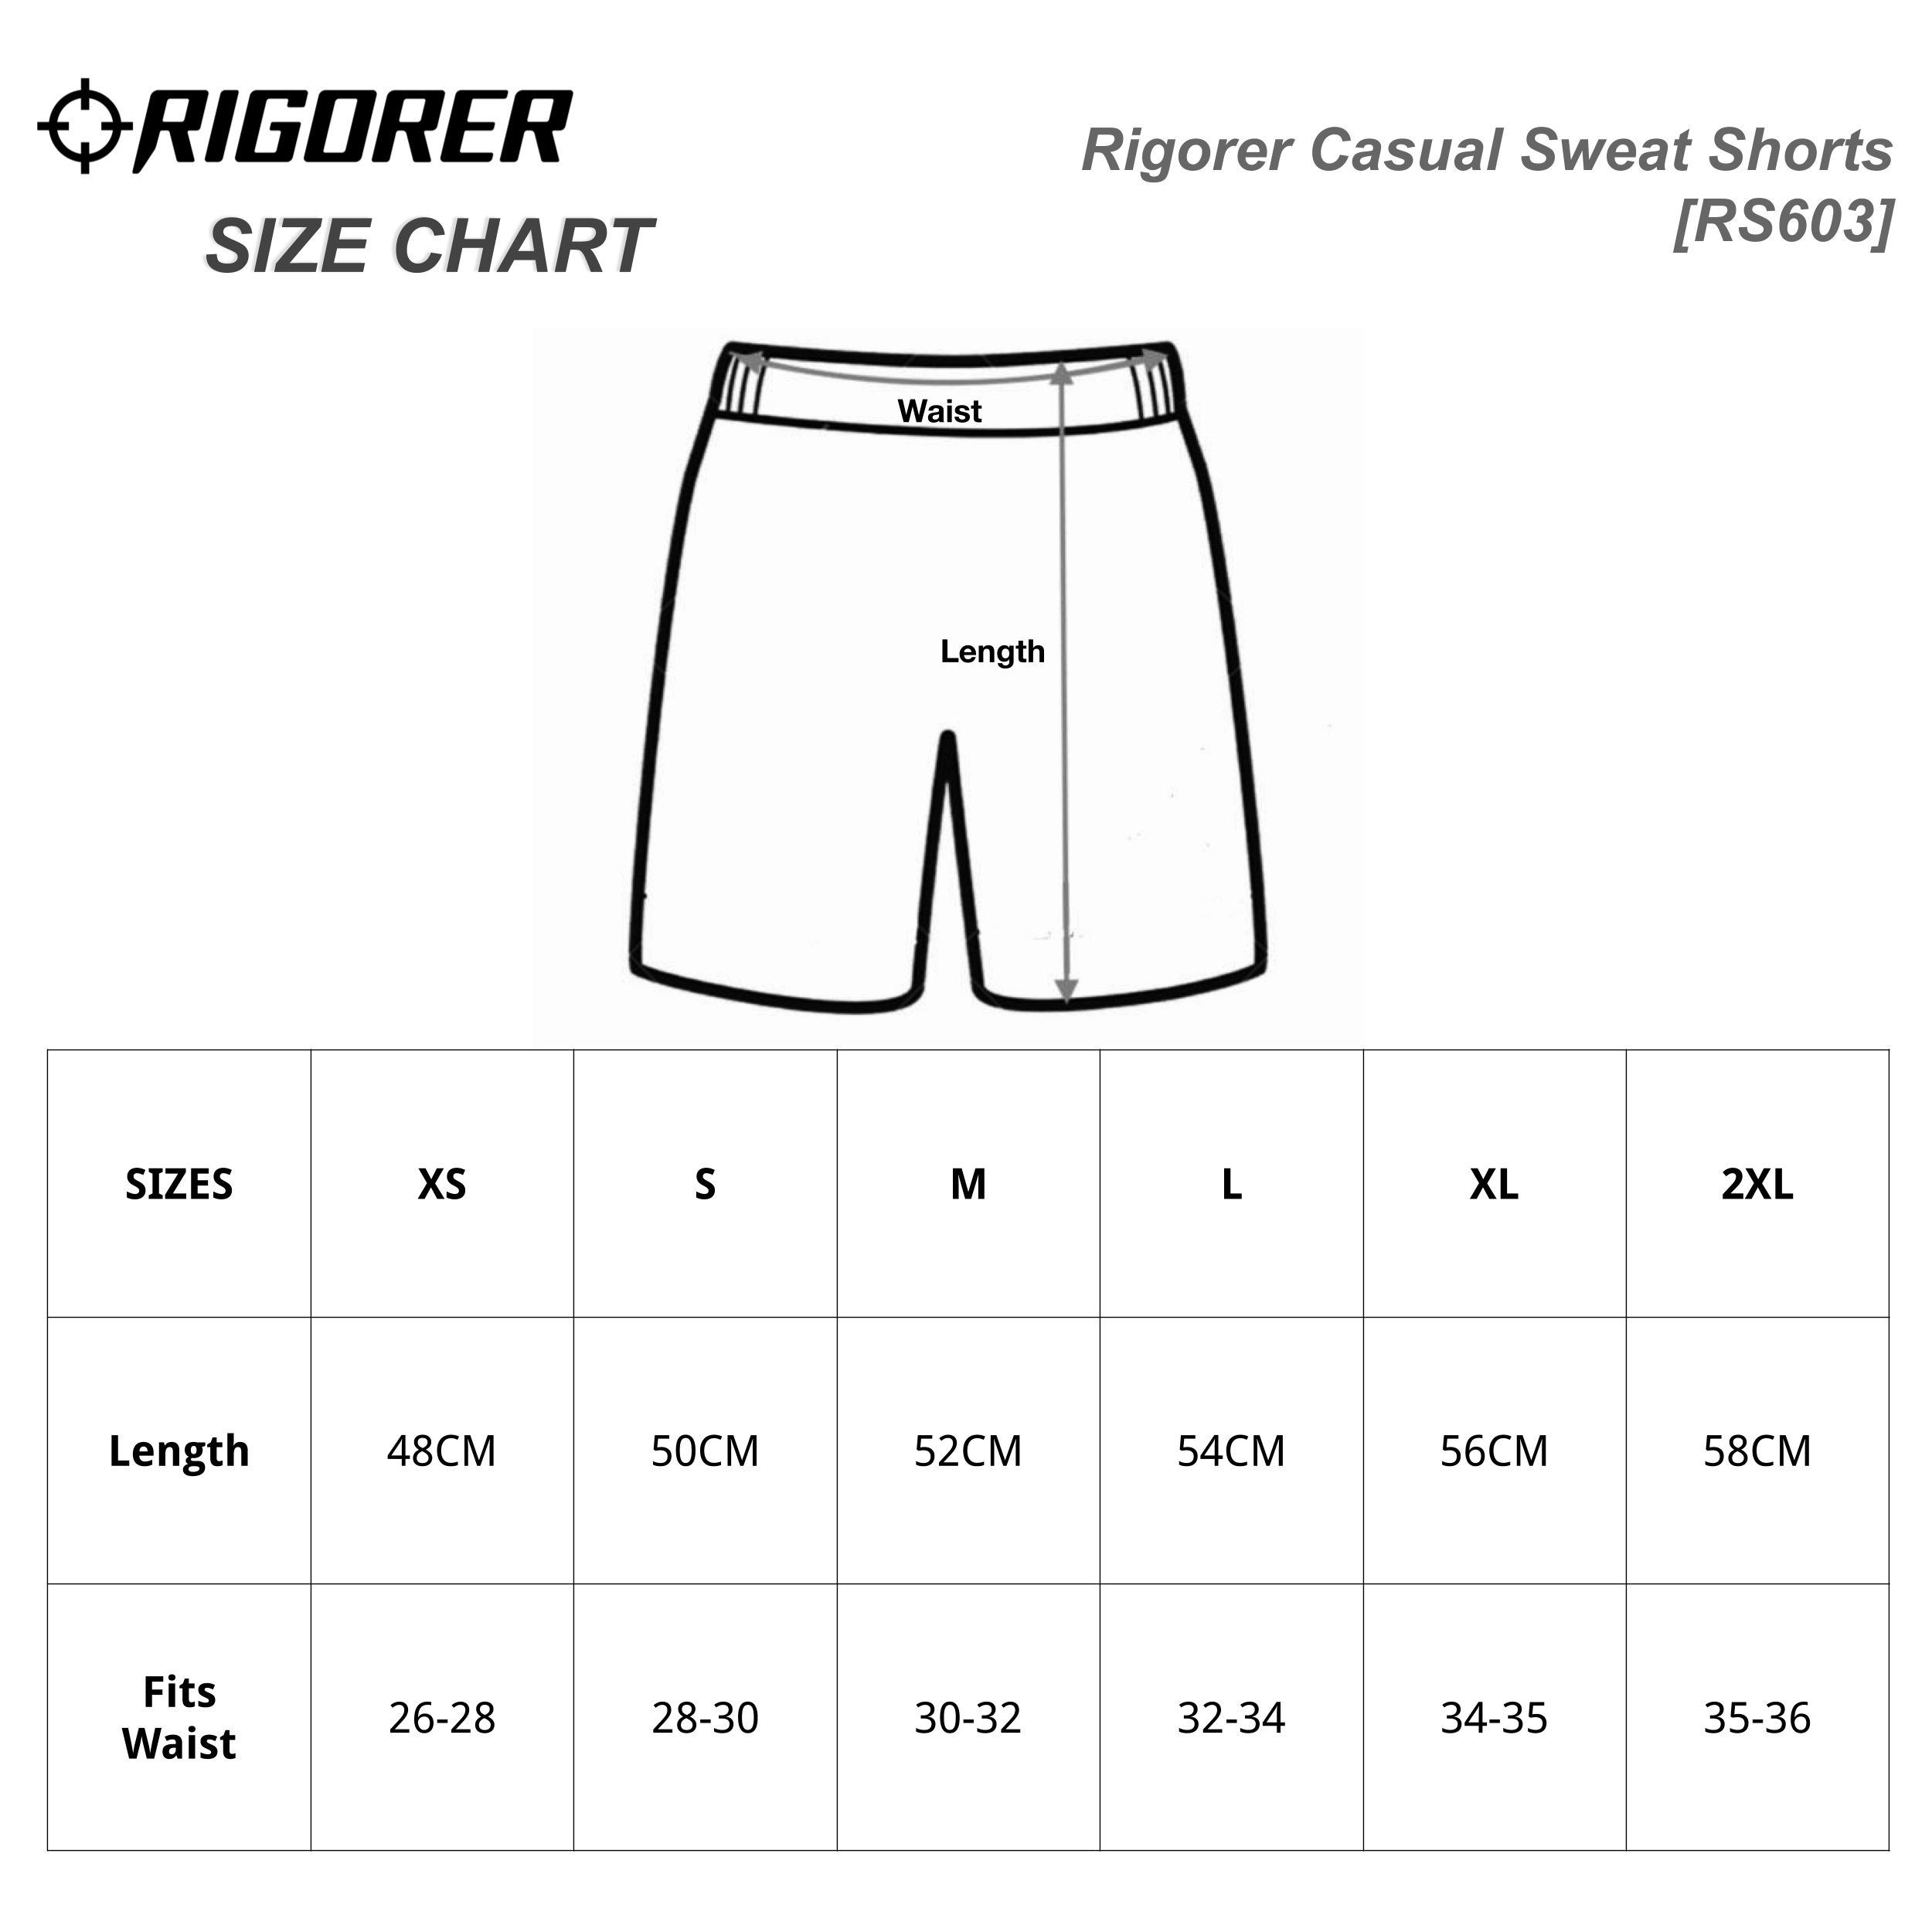 Rigorer Casual Sweat Shorts [RS603] sizing chart